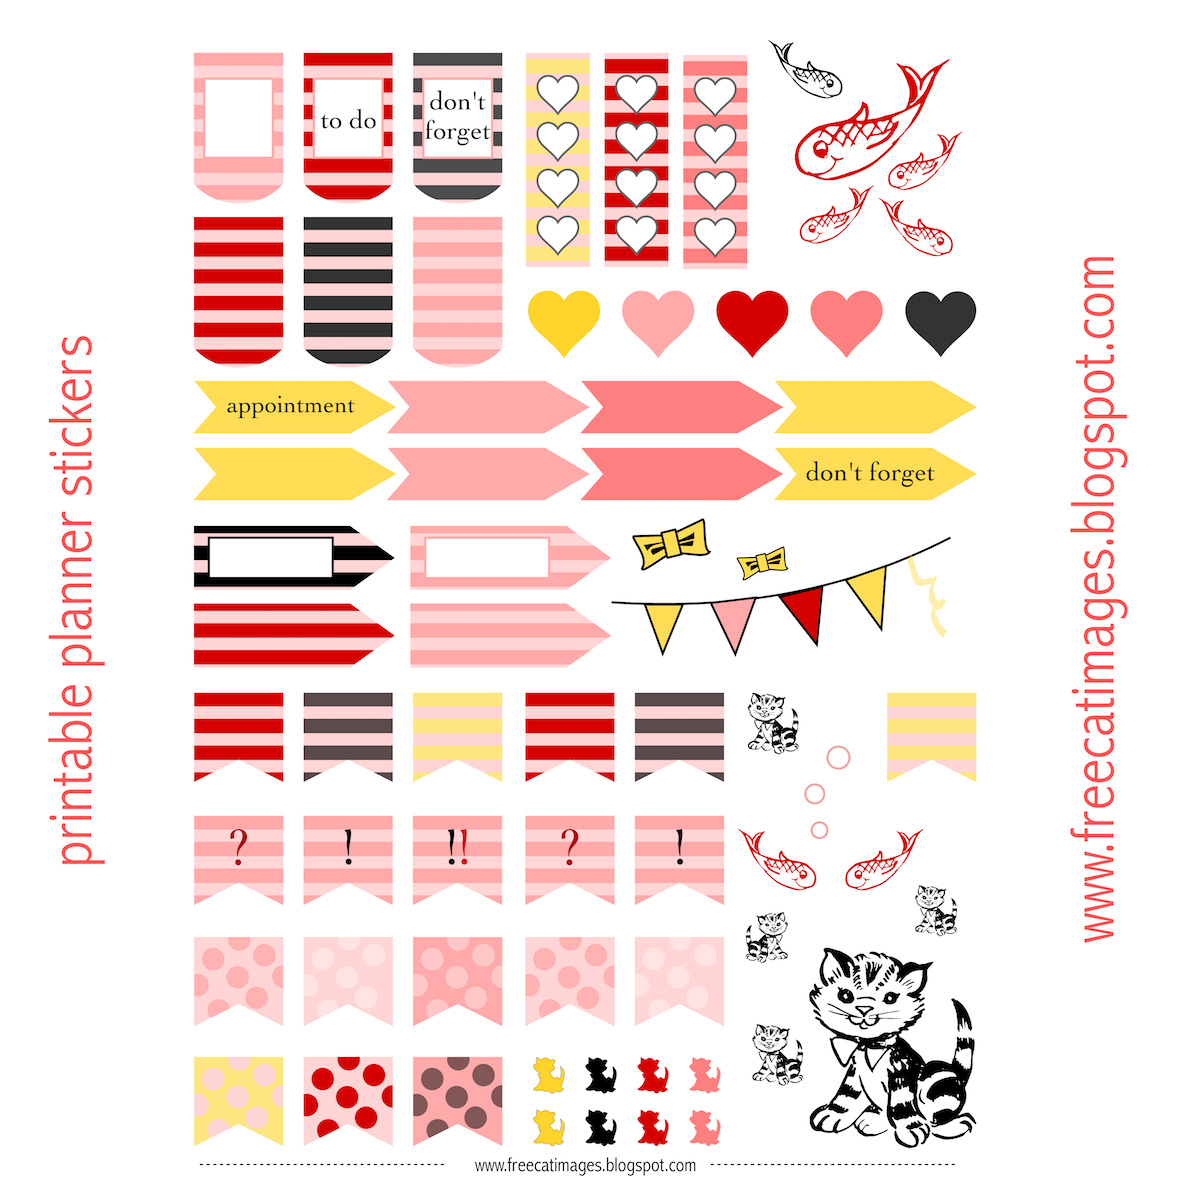 Free Cat Images: Free printable planner stickers - cats